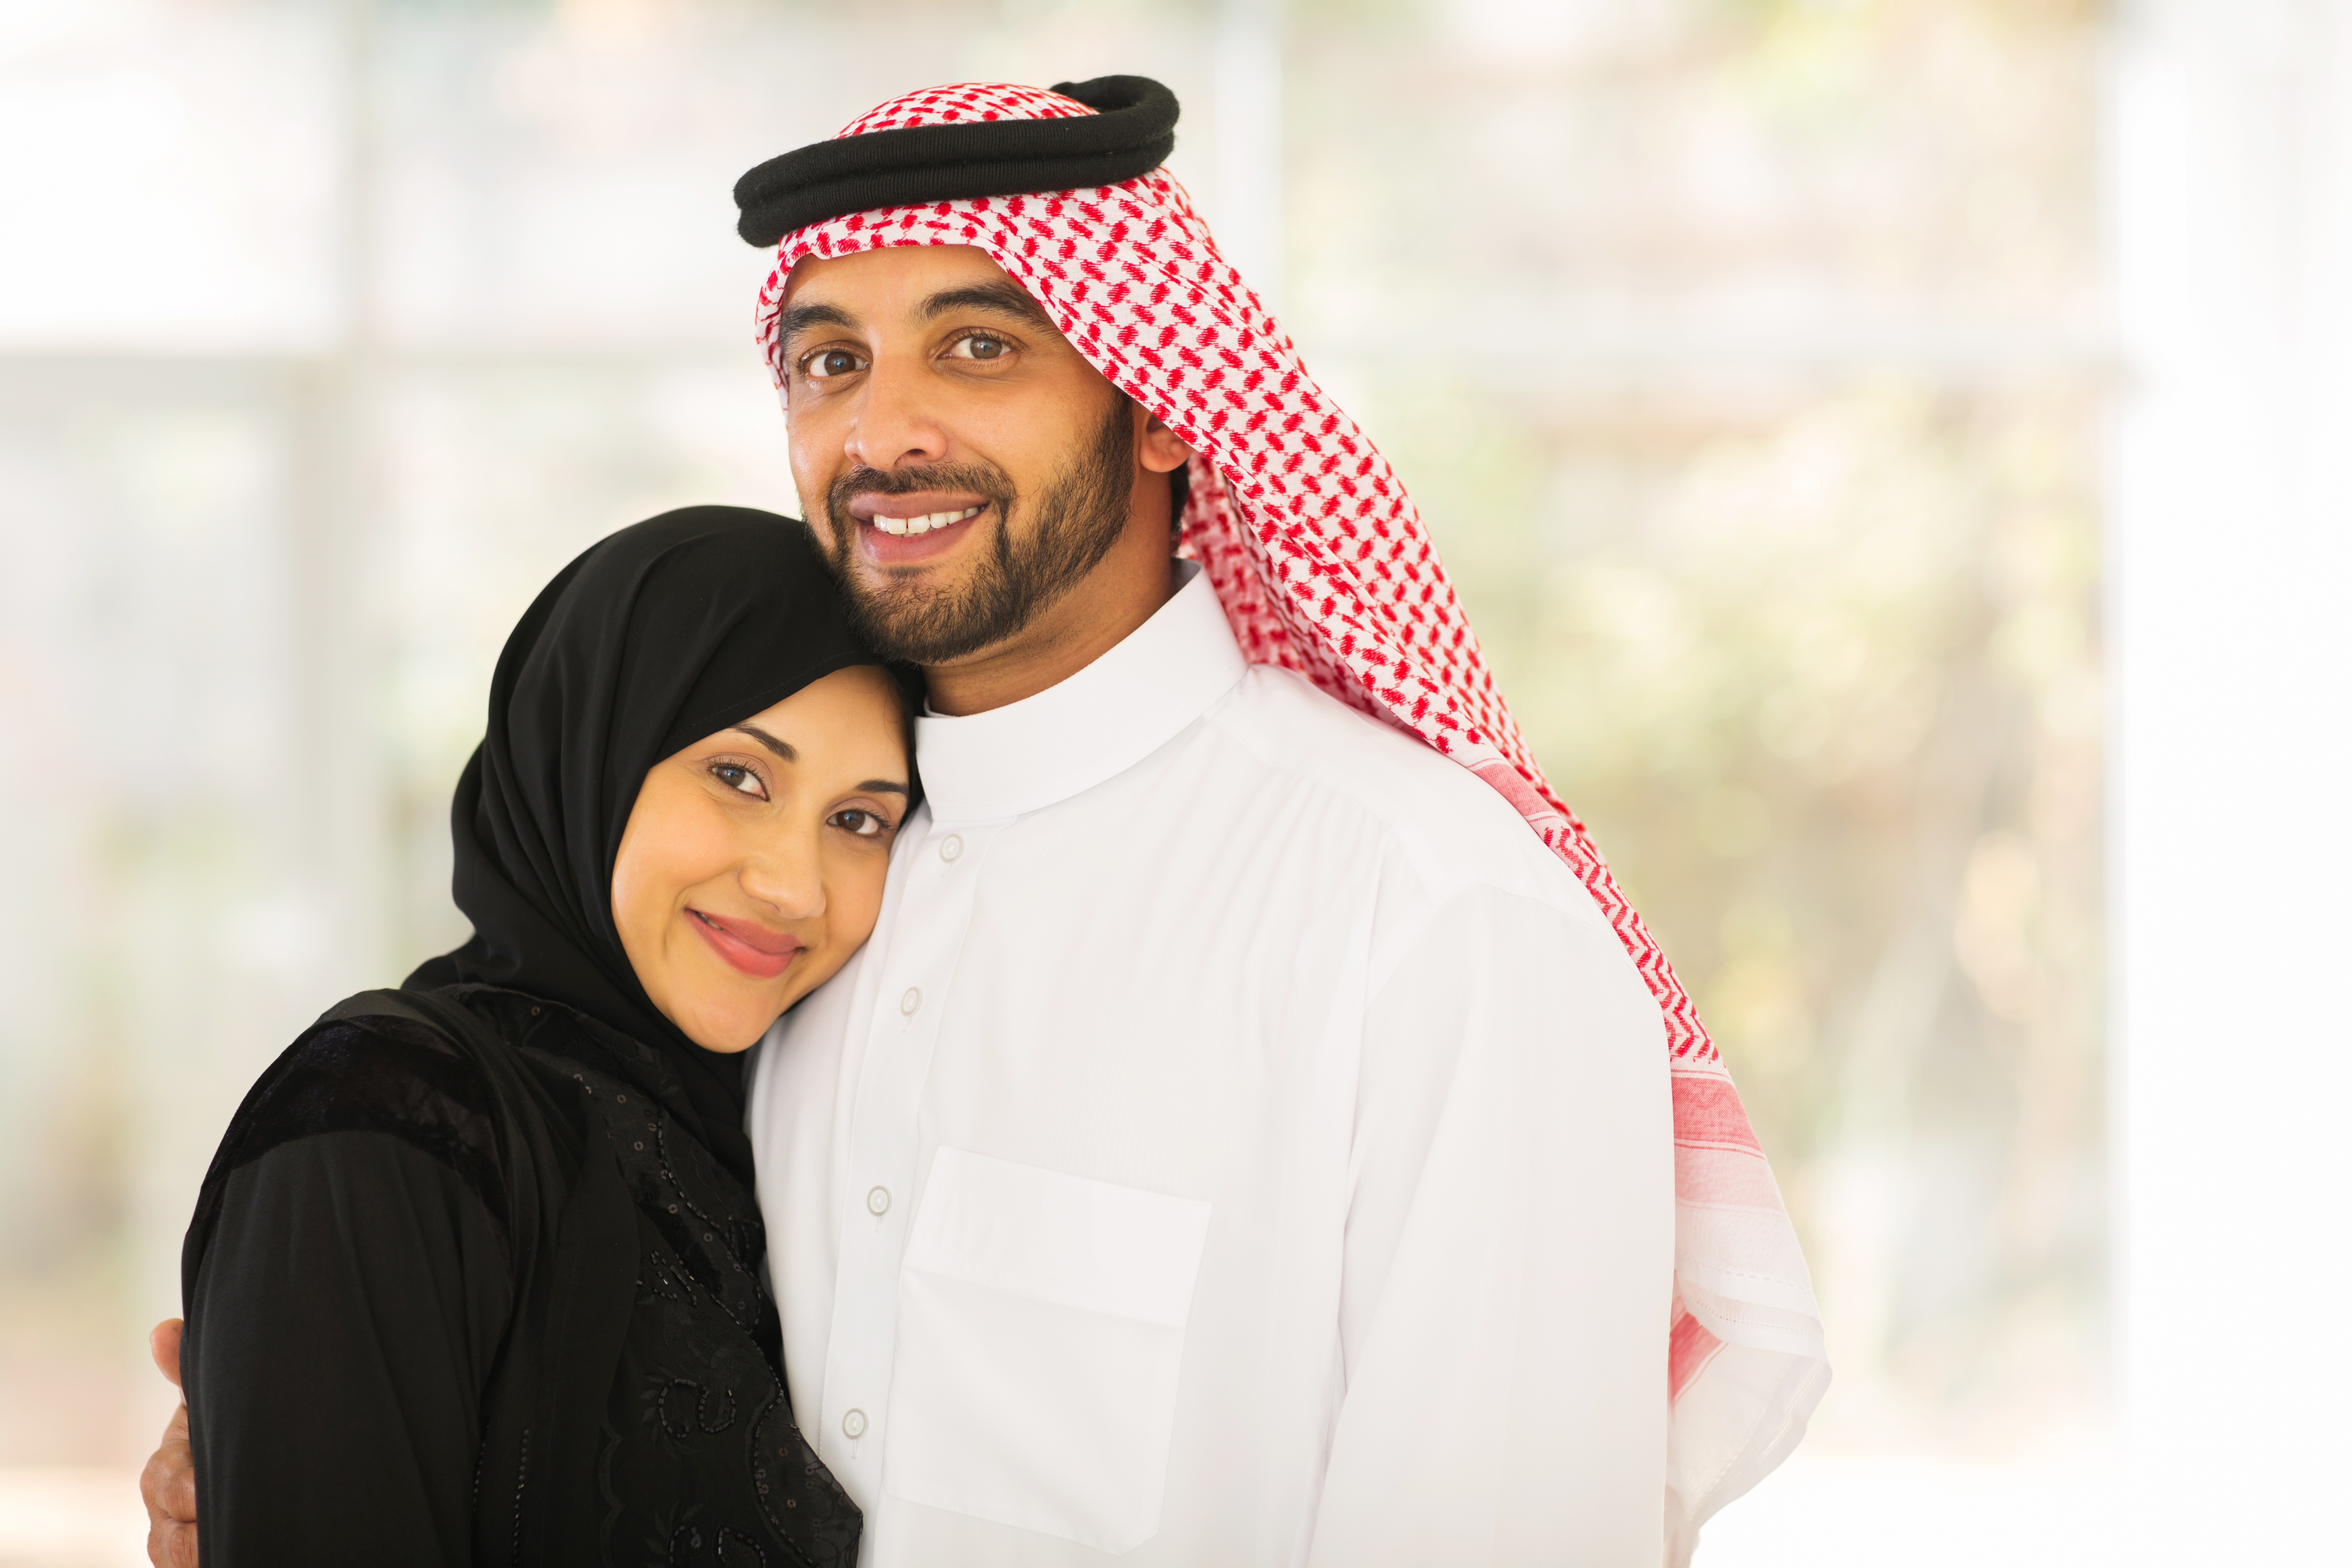 muslim singles in south greenfield Meet single women in greenfield ma online & chat in the forums dhu is a 100% free dating site to find single women in greenfield.